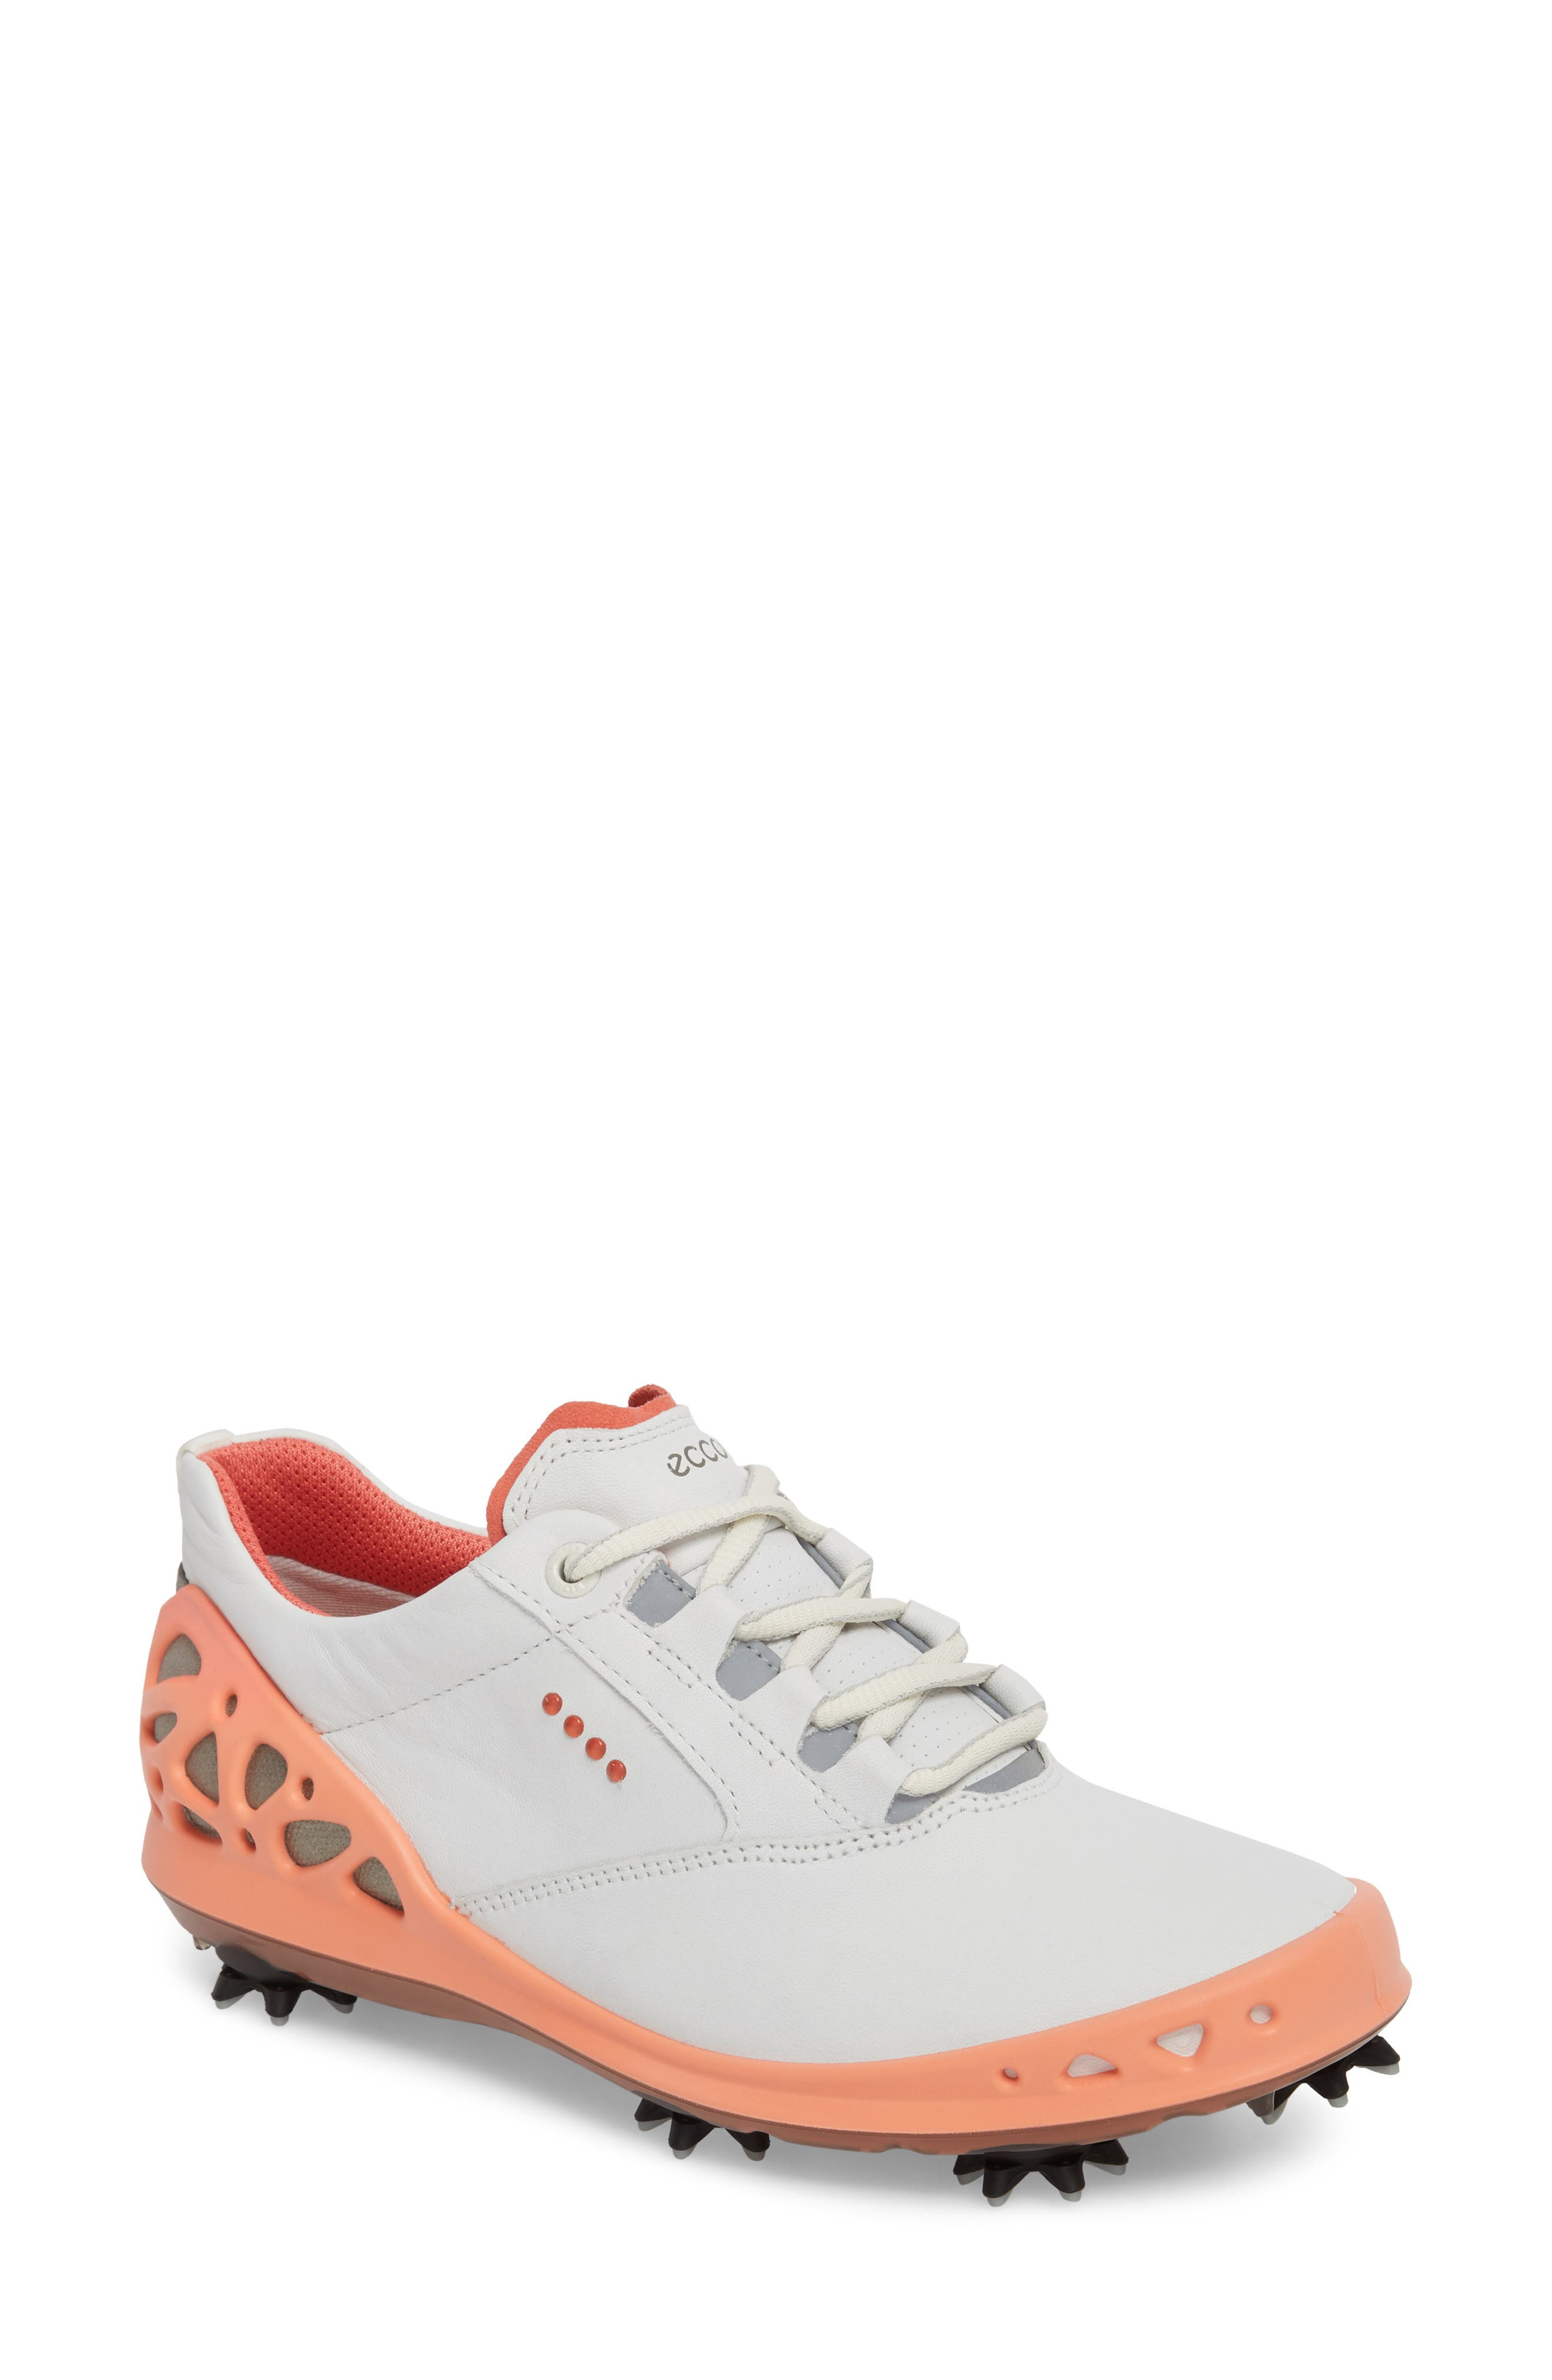 Cage Gore-Tex<sup>®</sup> Golf Shoe,                         Main,                         color, White/ Coral Leather